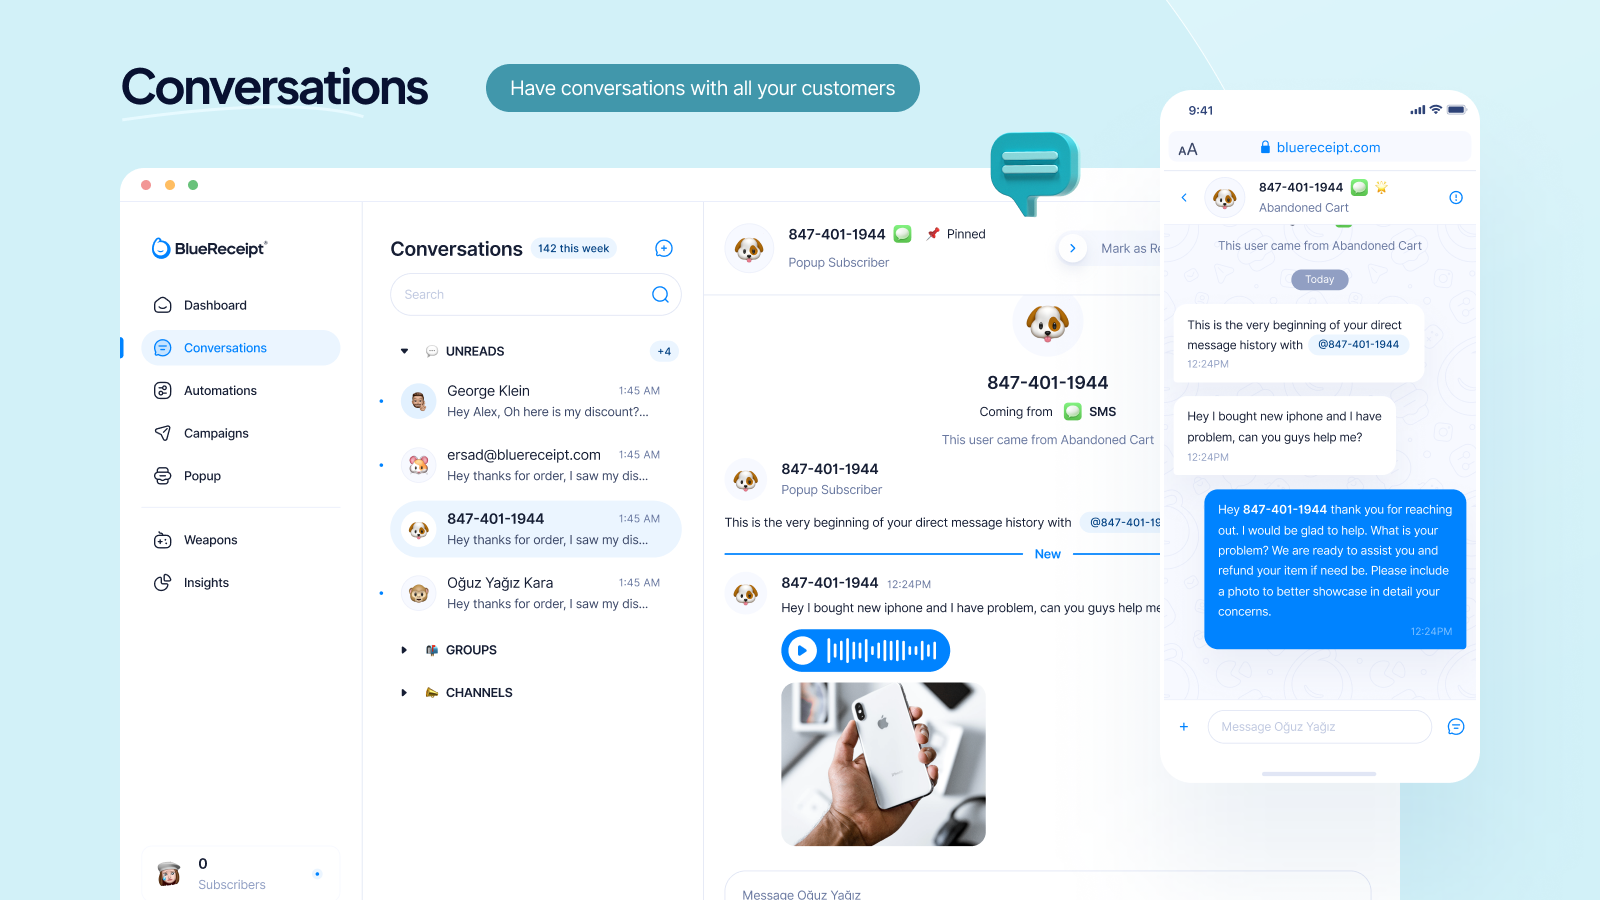 Conversions 1:1 across all channels (text, email, instagram)